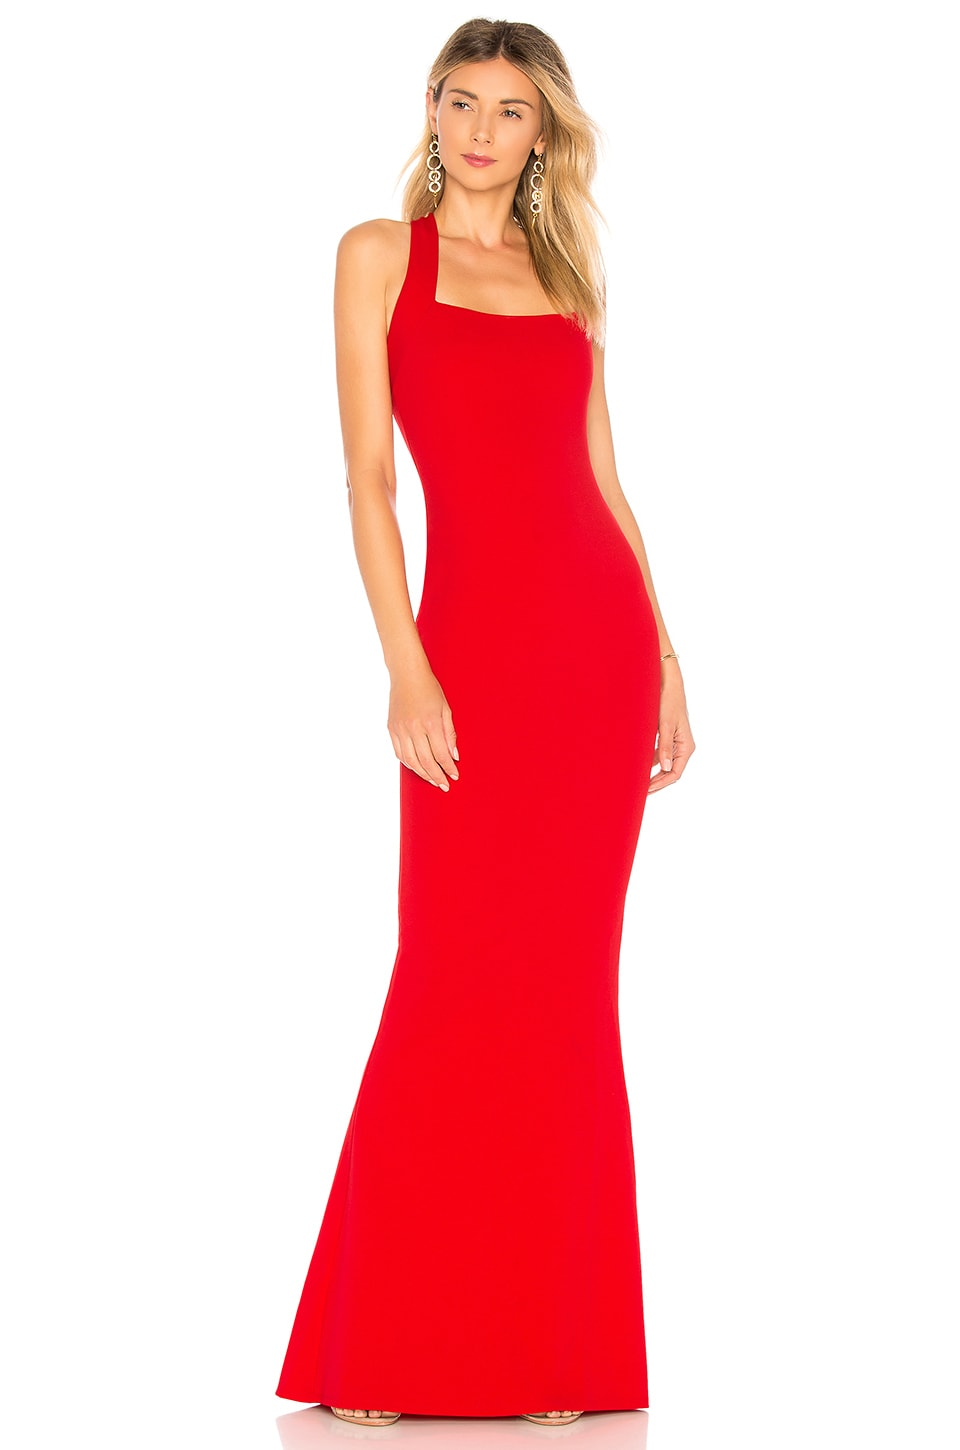 Viva 2Way Gown, view 2, click to view large image.